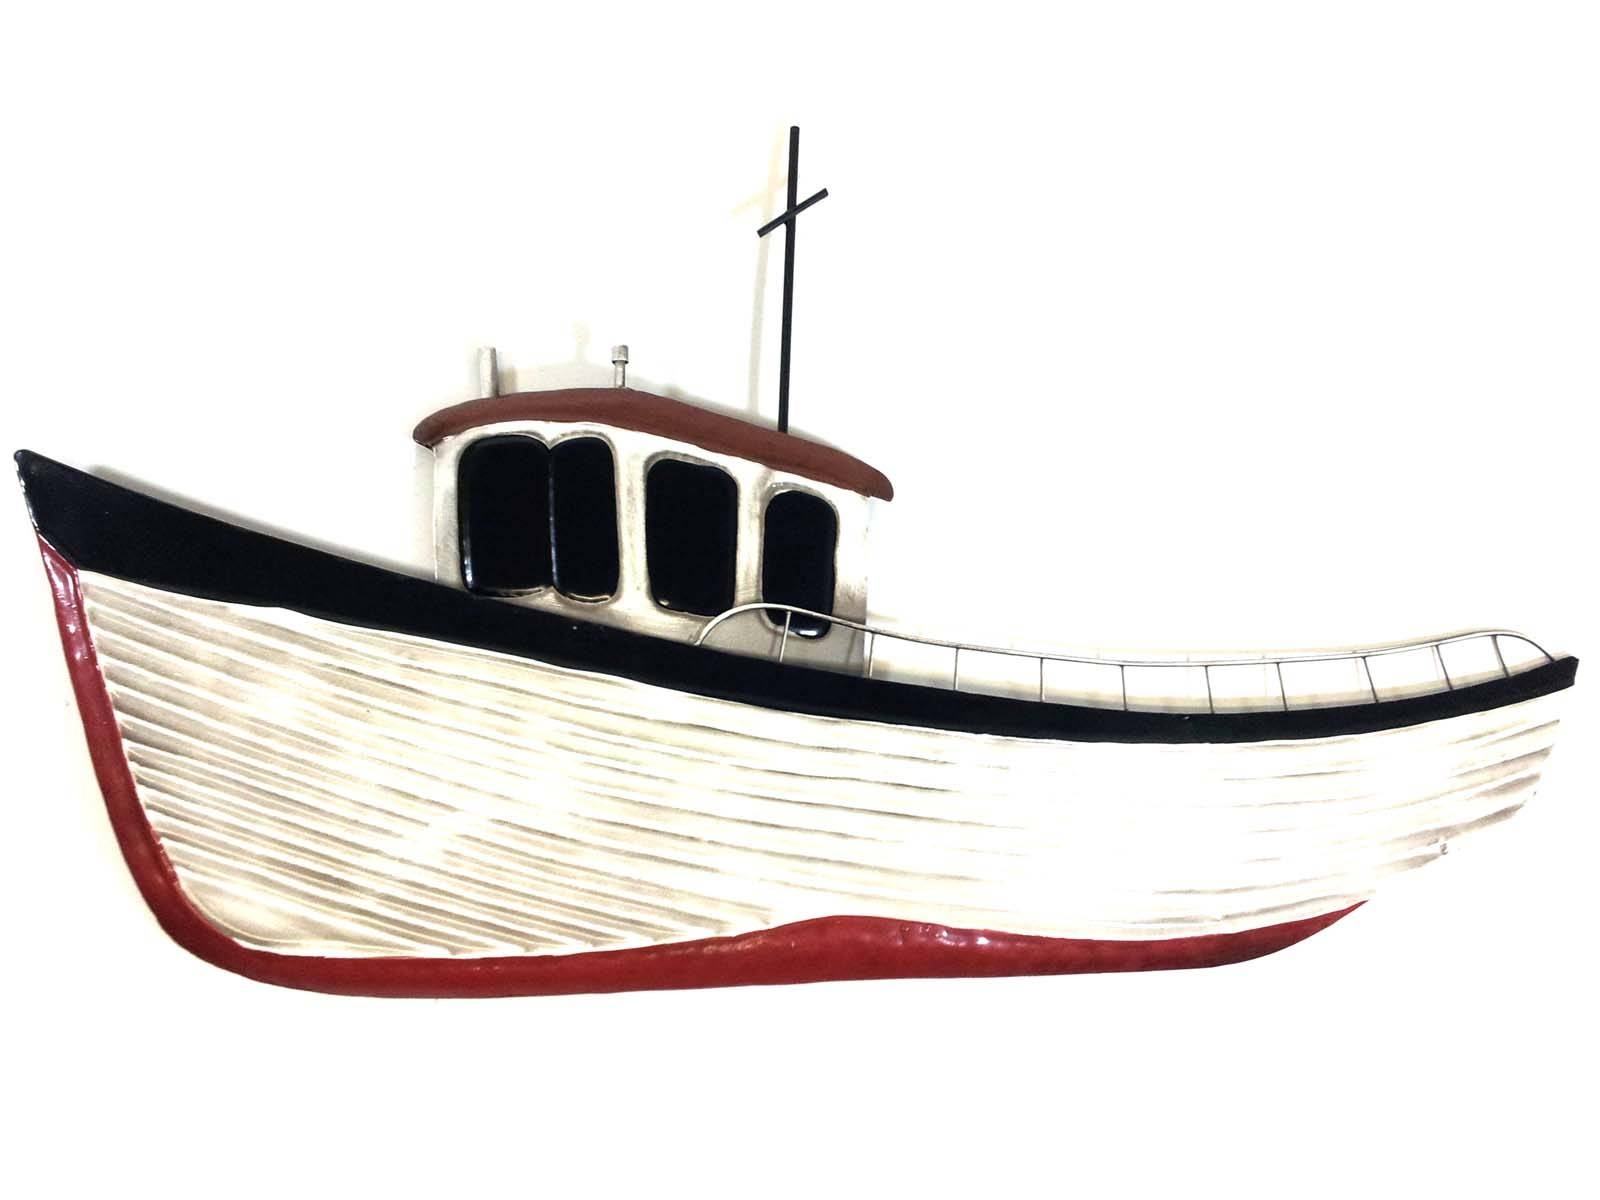 Metal Wall Art – Fishing Boat Intended For Most Recently Released Boat Wall Art (View 14 of 20)